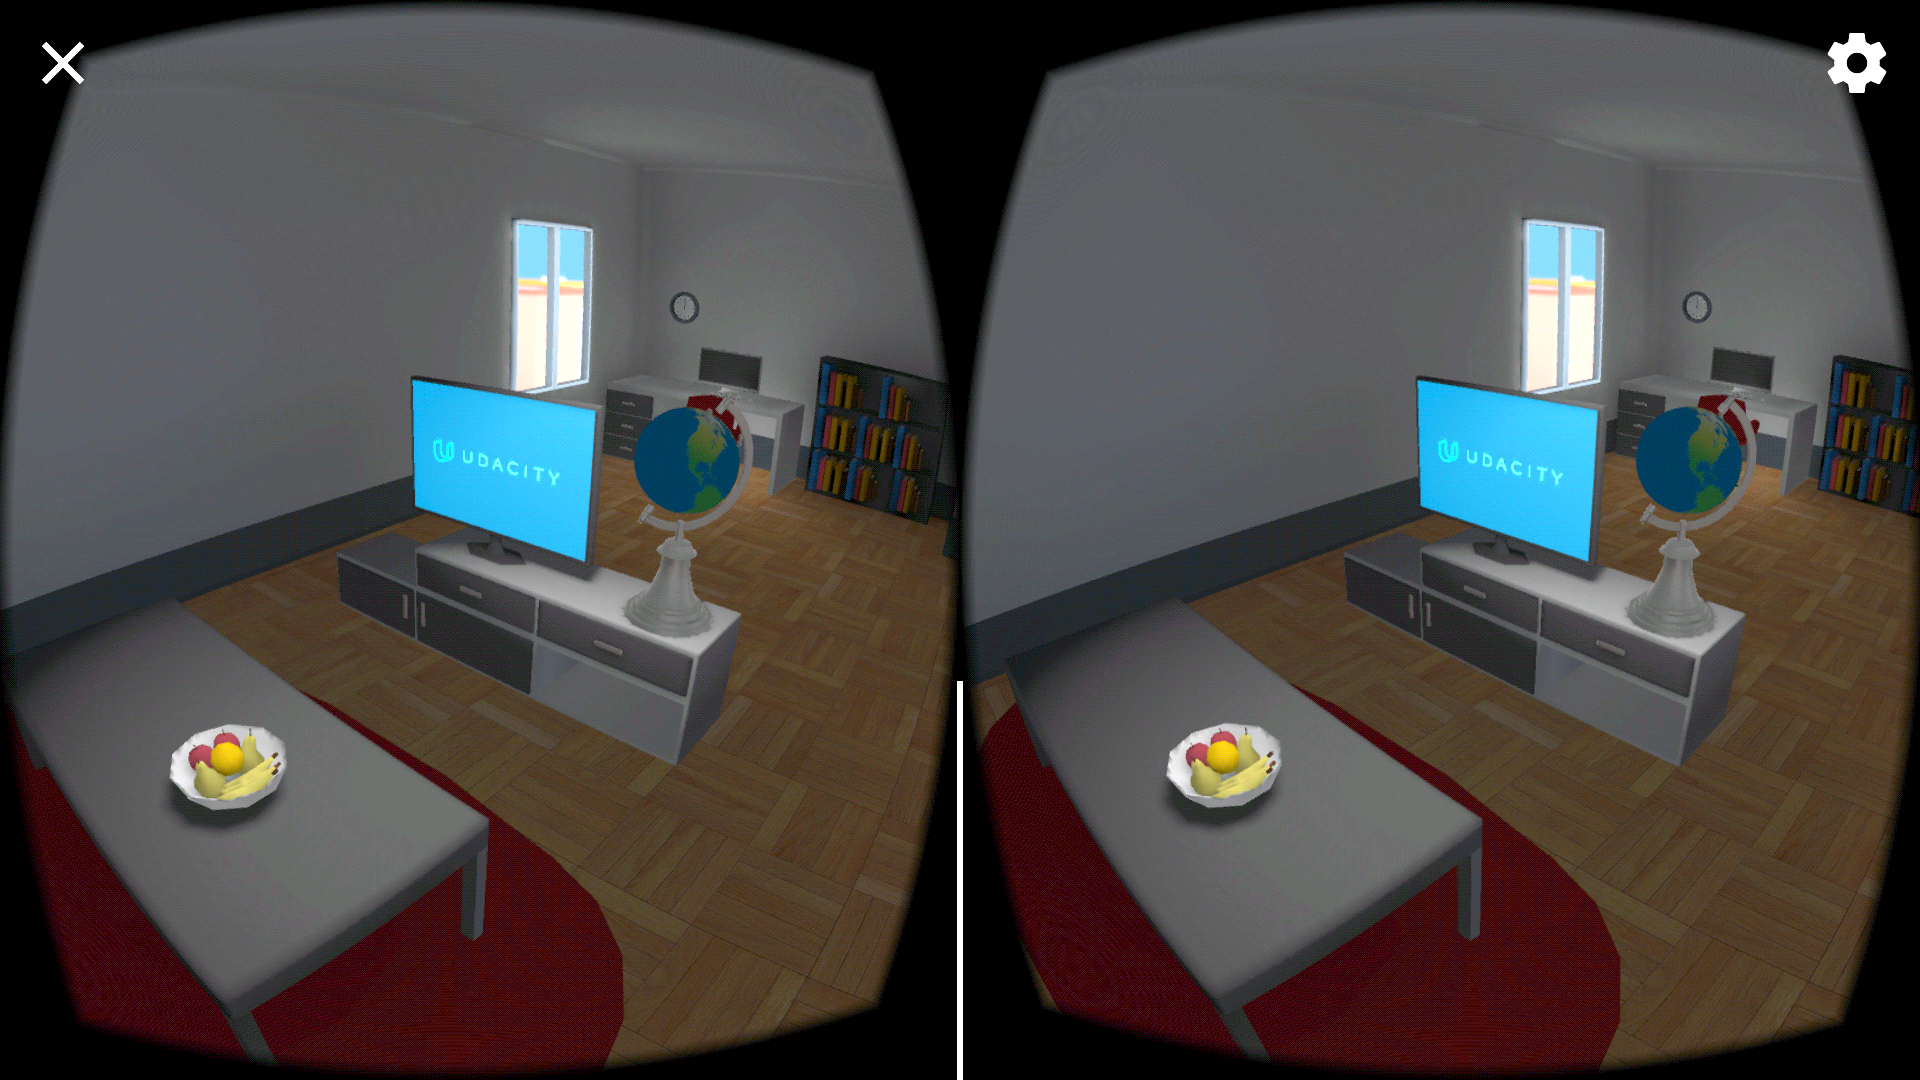 stereoscopic image of a 3D rendered apartment